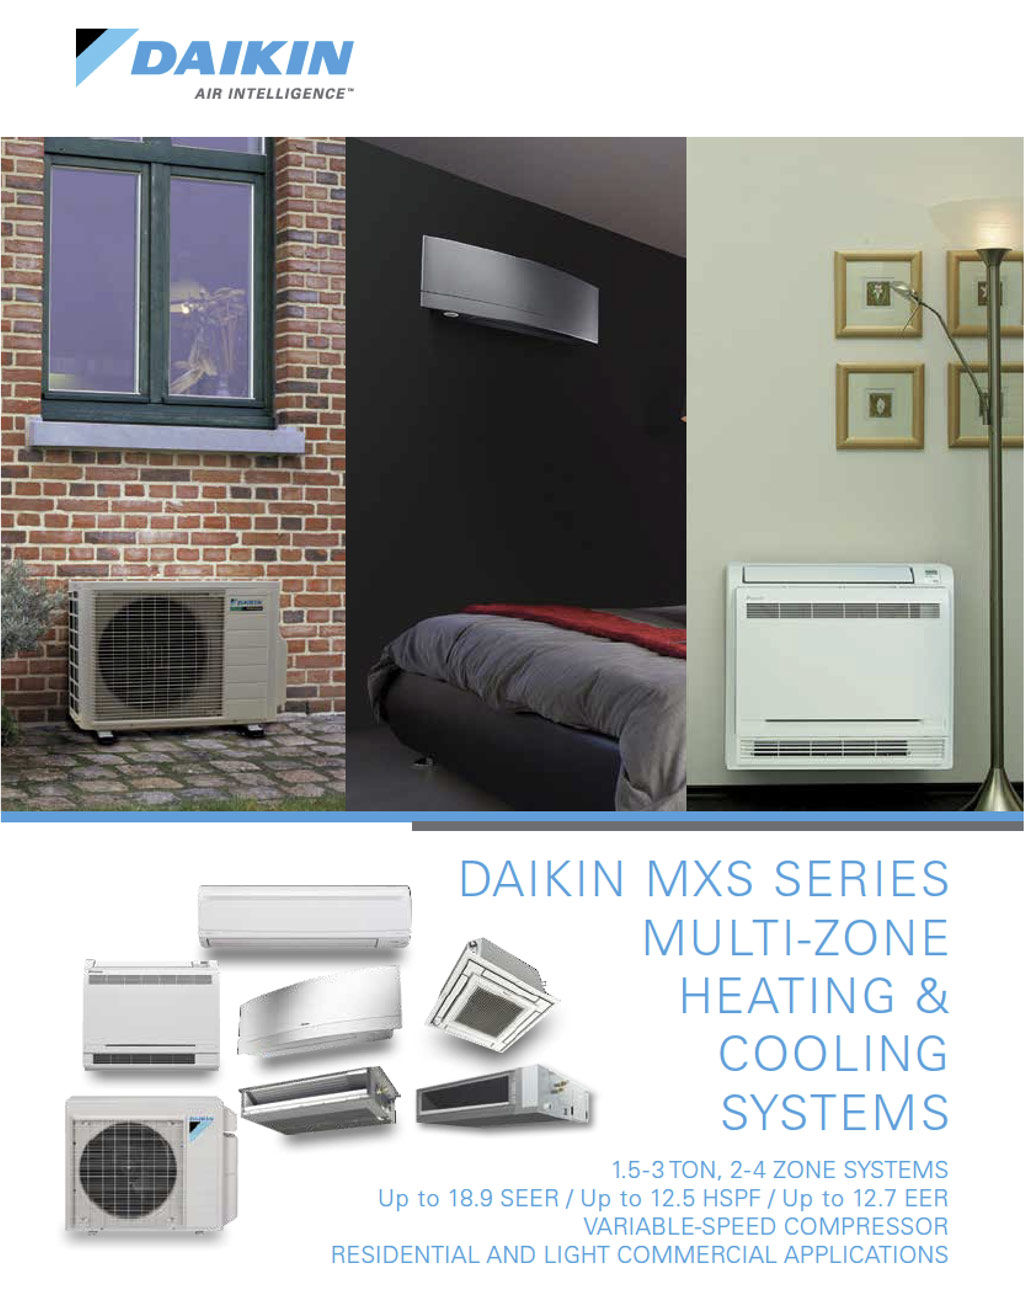 Daikin MXS Series Brochure Cover